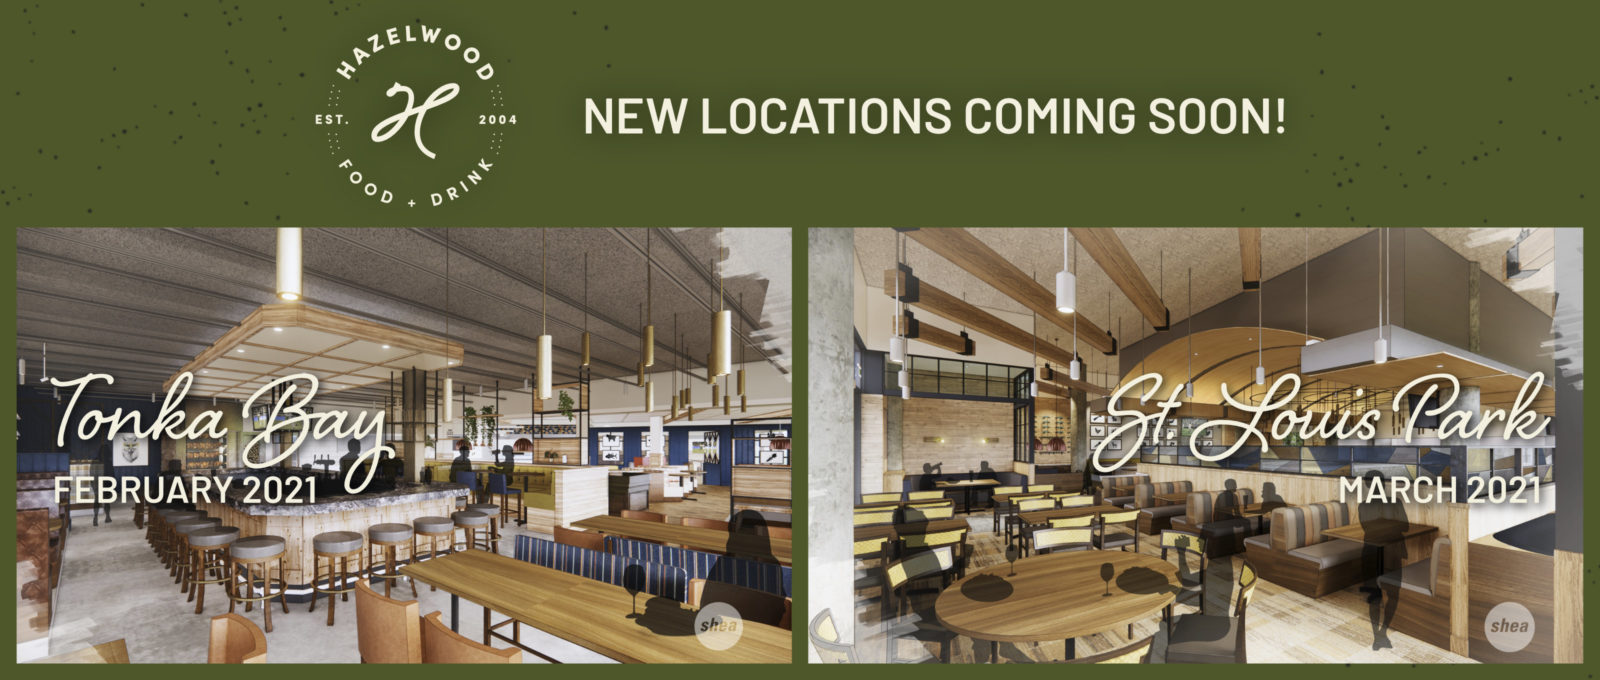 New Locations! Tonka Bay (February 2021) and St. Louis Park (March 2021)